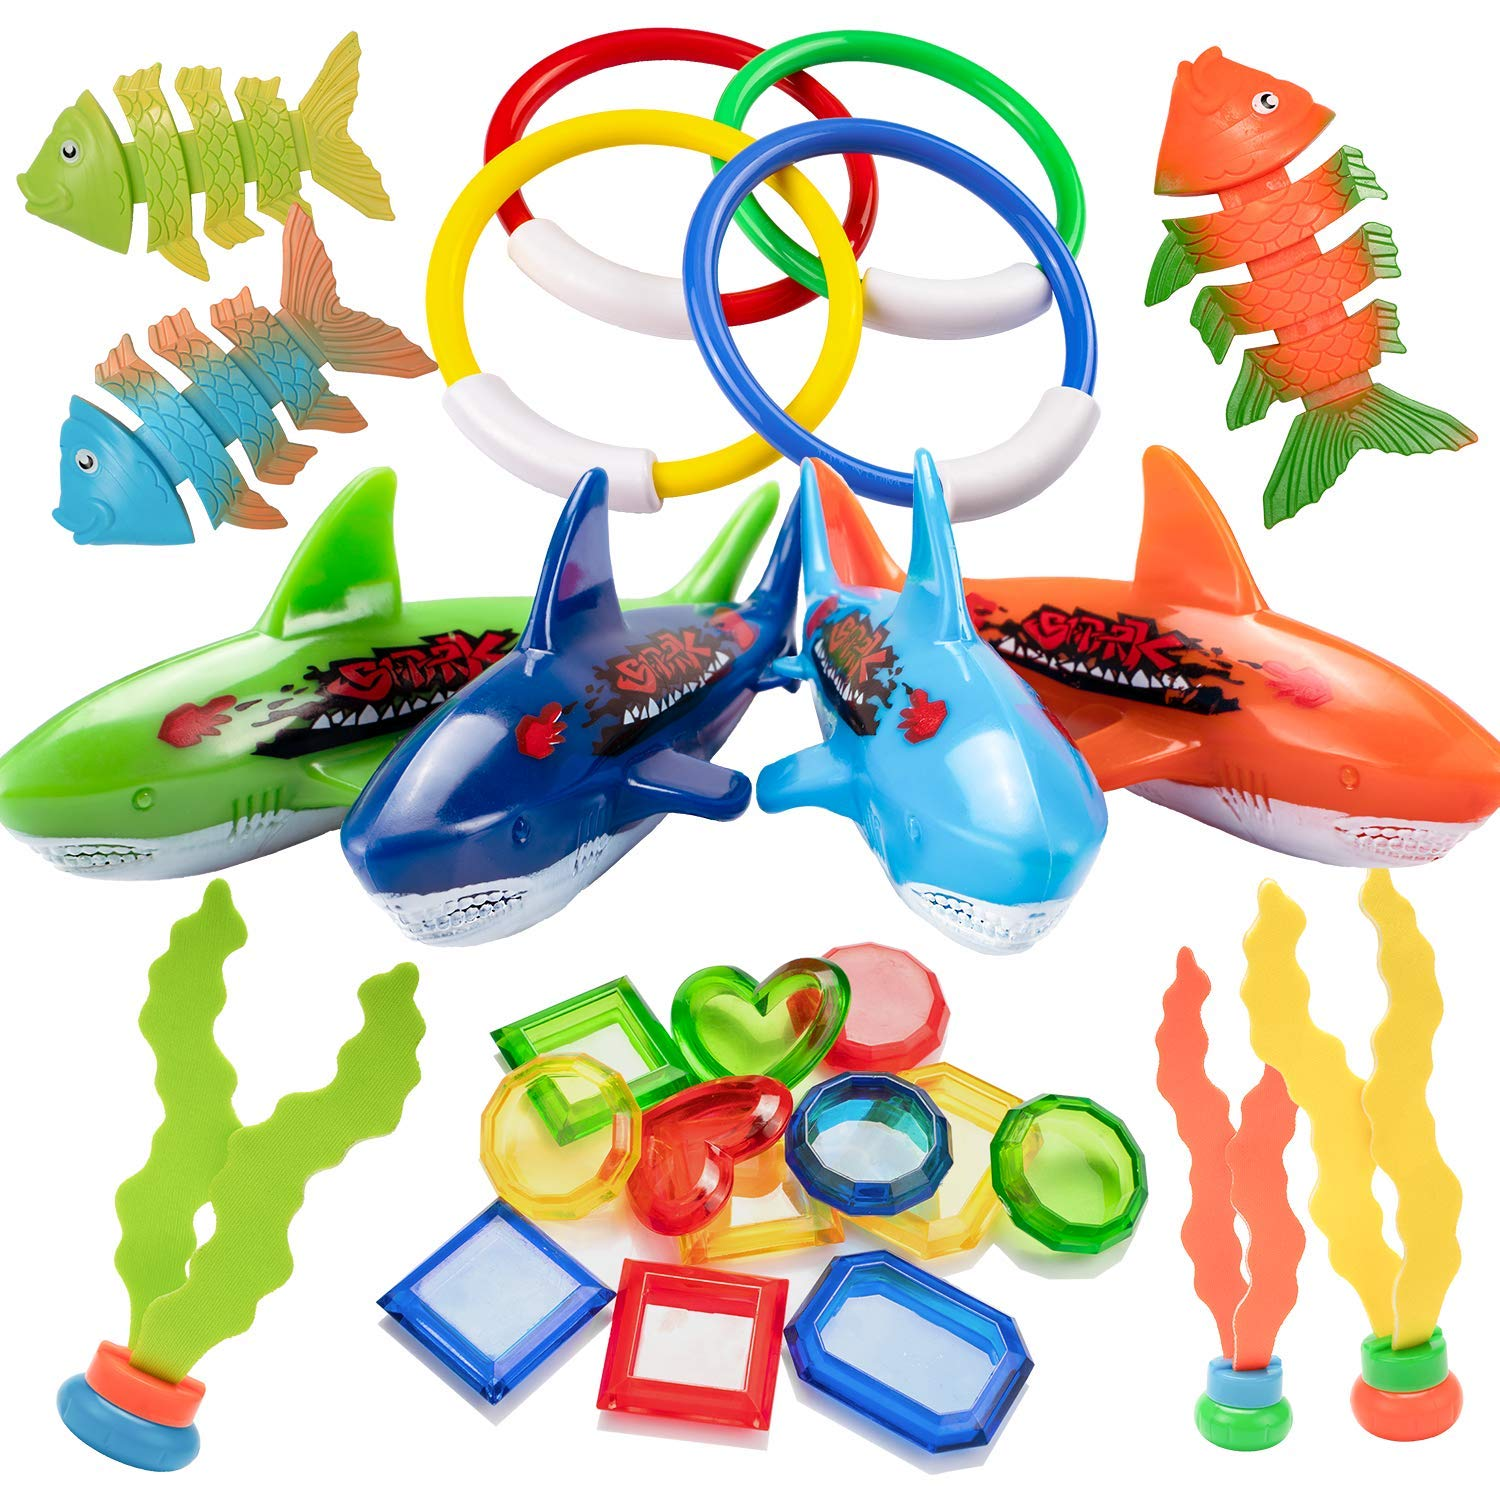 UNEEDE 26PCS Diving Pool Toys Underwater Swimming Pool Toys Including (4) Diving Rings (4) Toypedo Bandits (3) Stringy Octopus (3) Diving Fish and (12) Treasures Gift Set for Kids, Ages 3 and Up